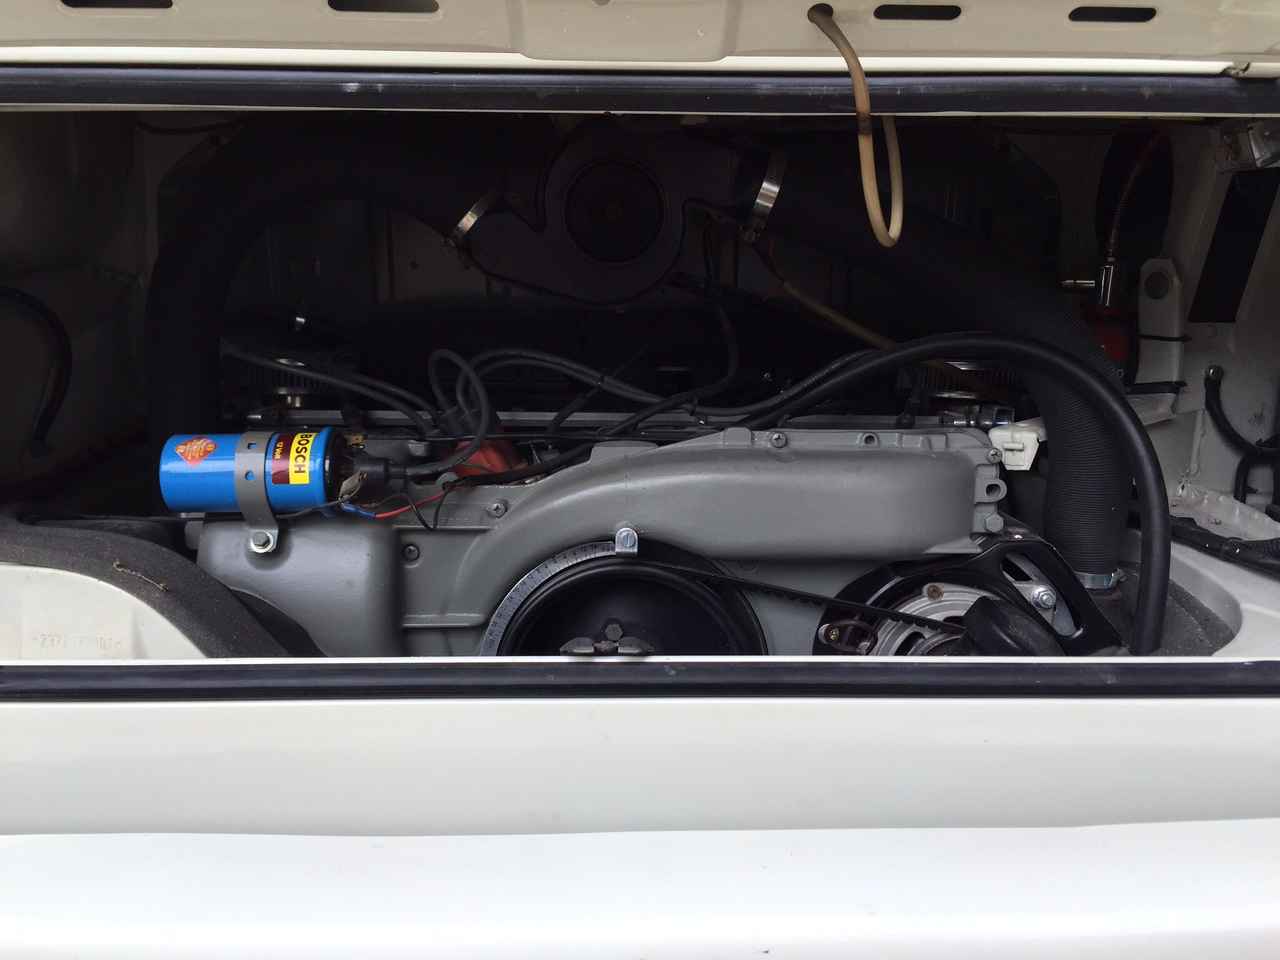 VW Westfalia Camper Van Engine